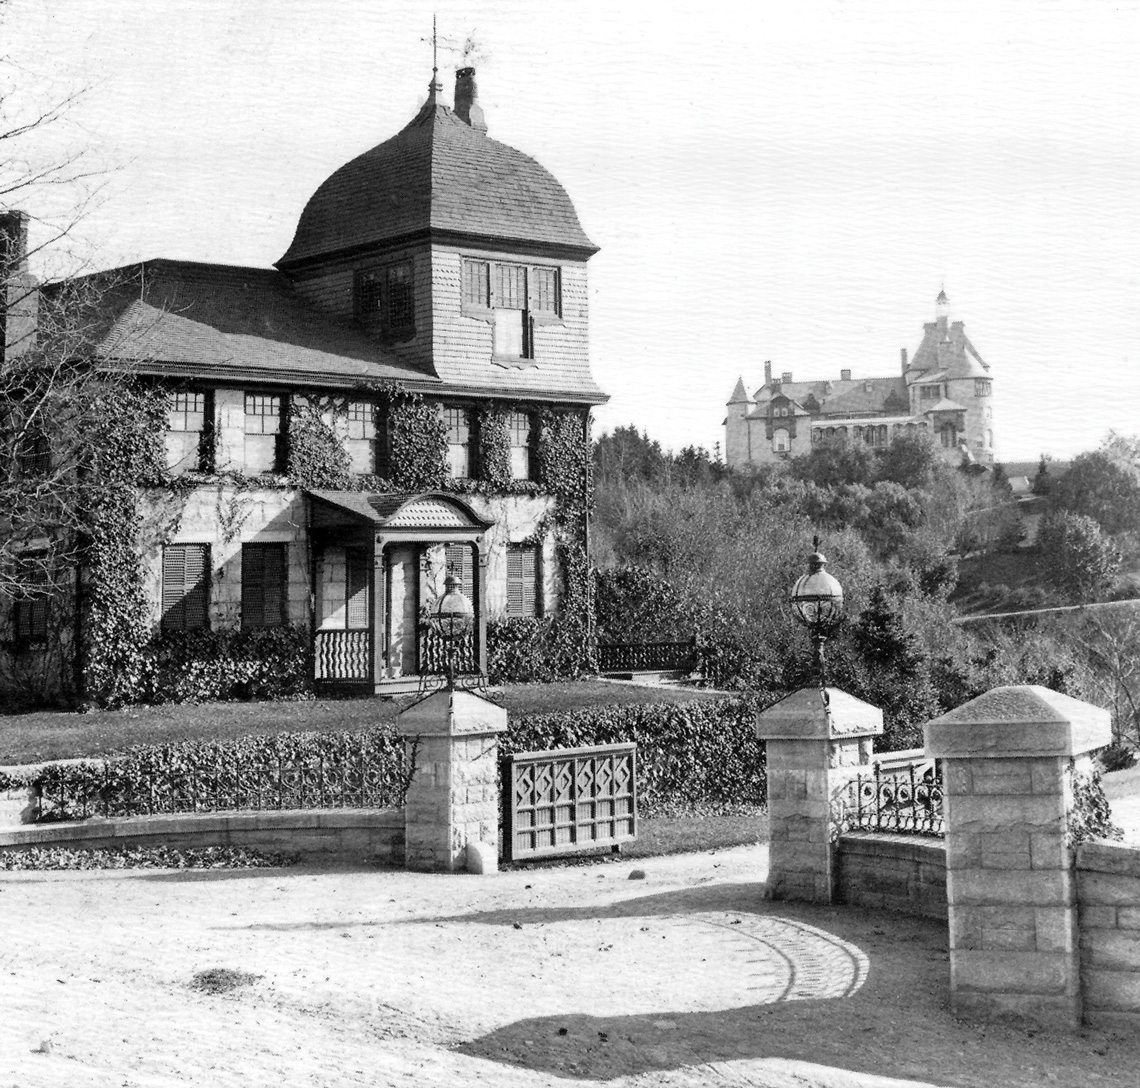 The Tenney Gatehouse circa 1920, Greycourt Castle is in the background. Courtesy Methuen Historical Collection.